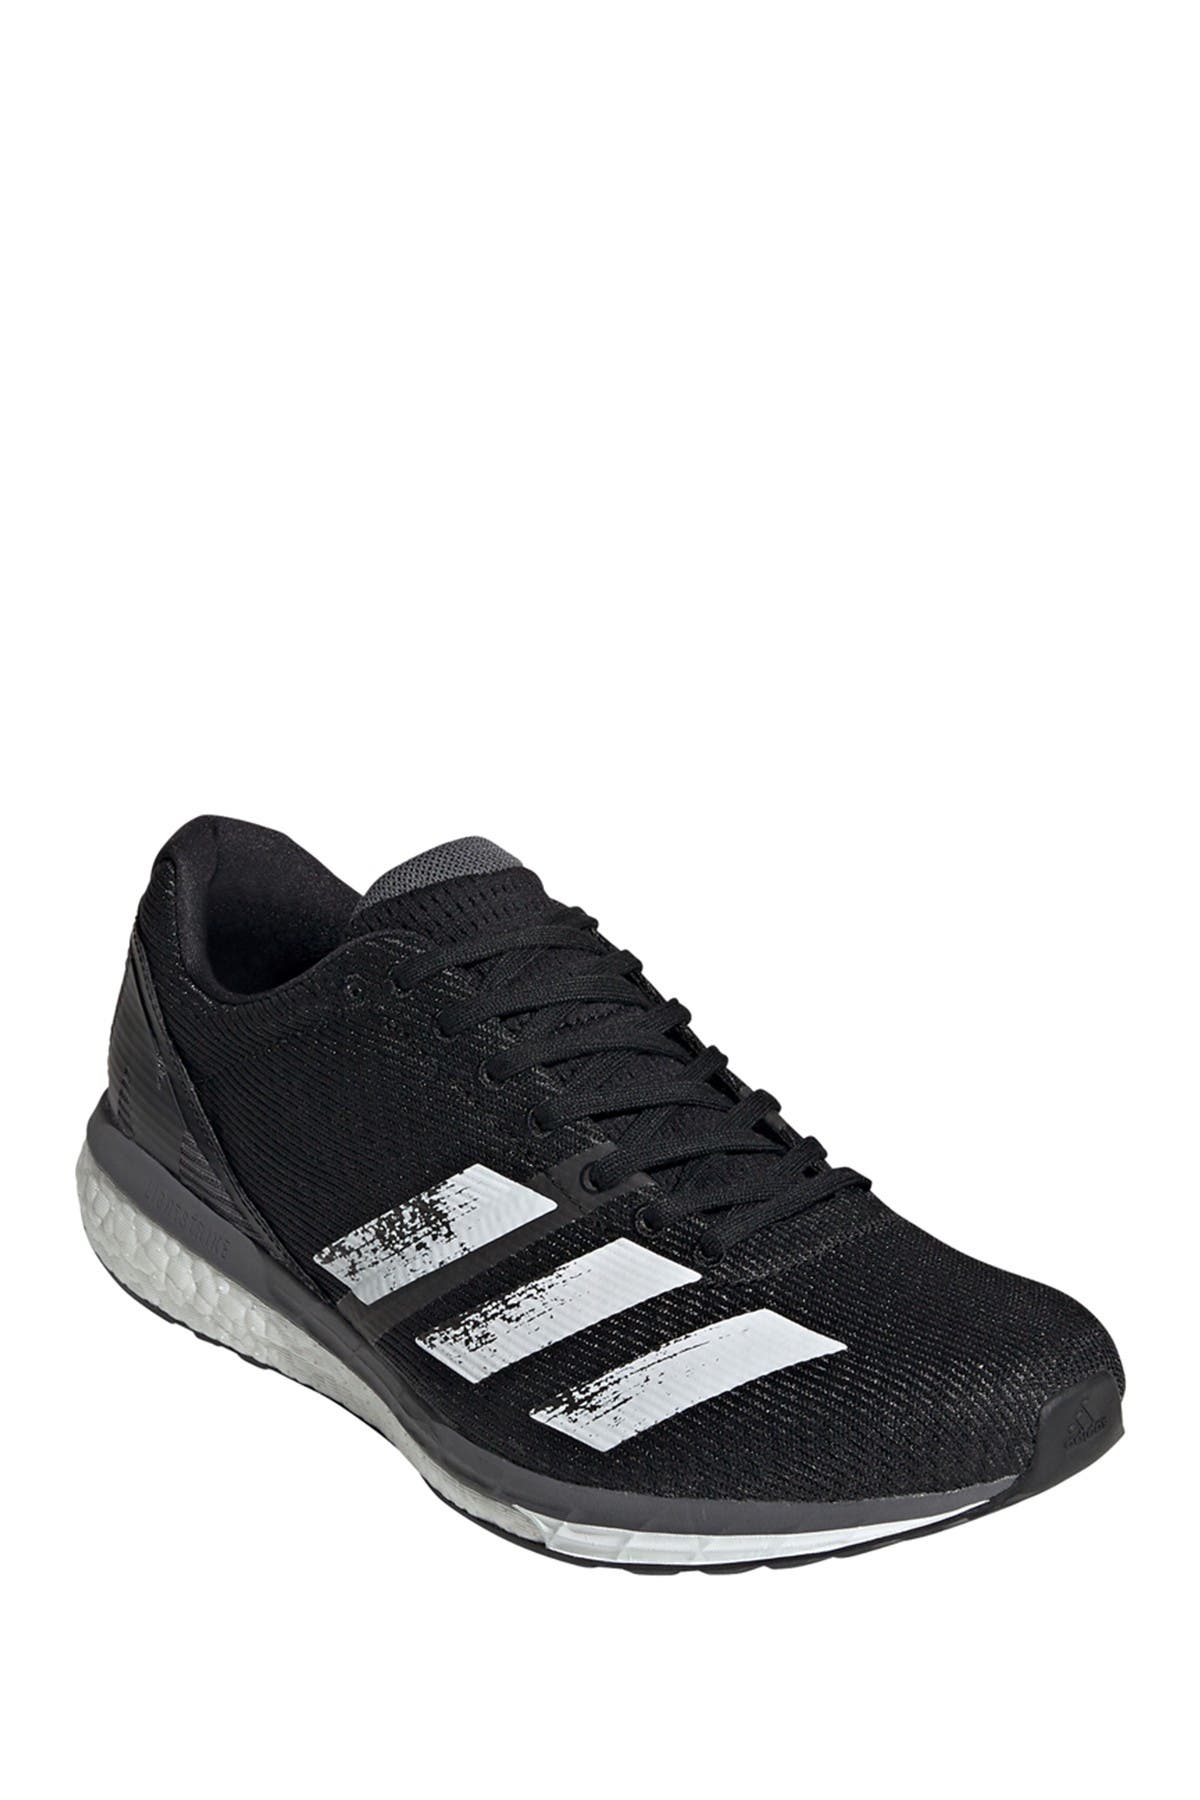 Image of adidas Adizero Boston 8 Running Shoe